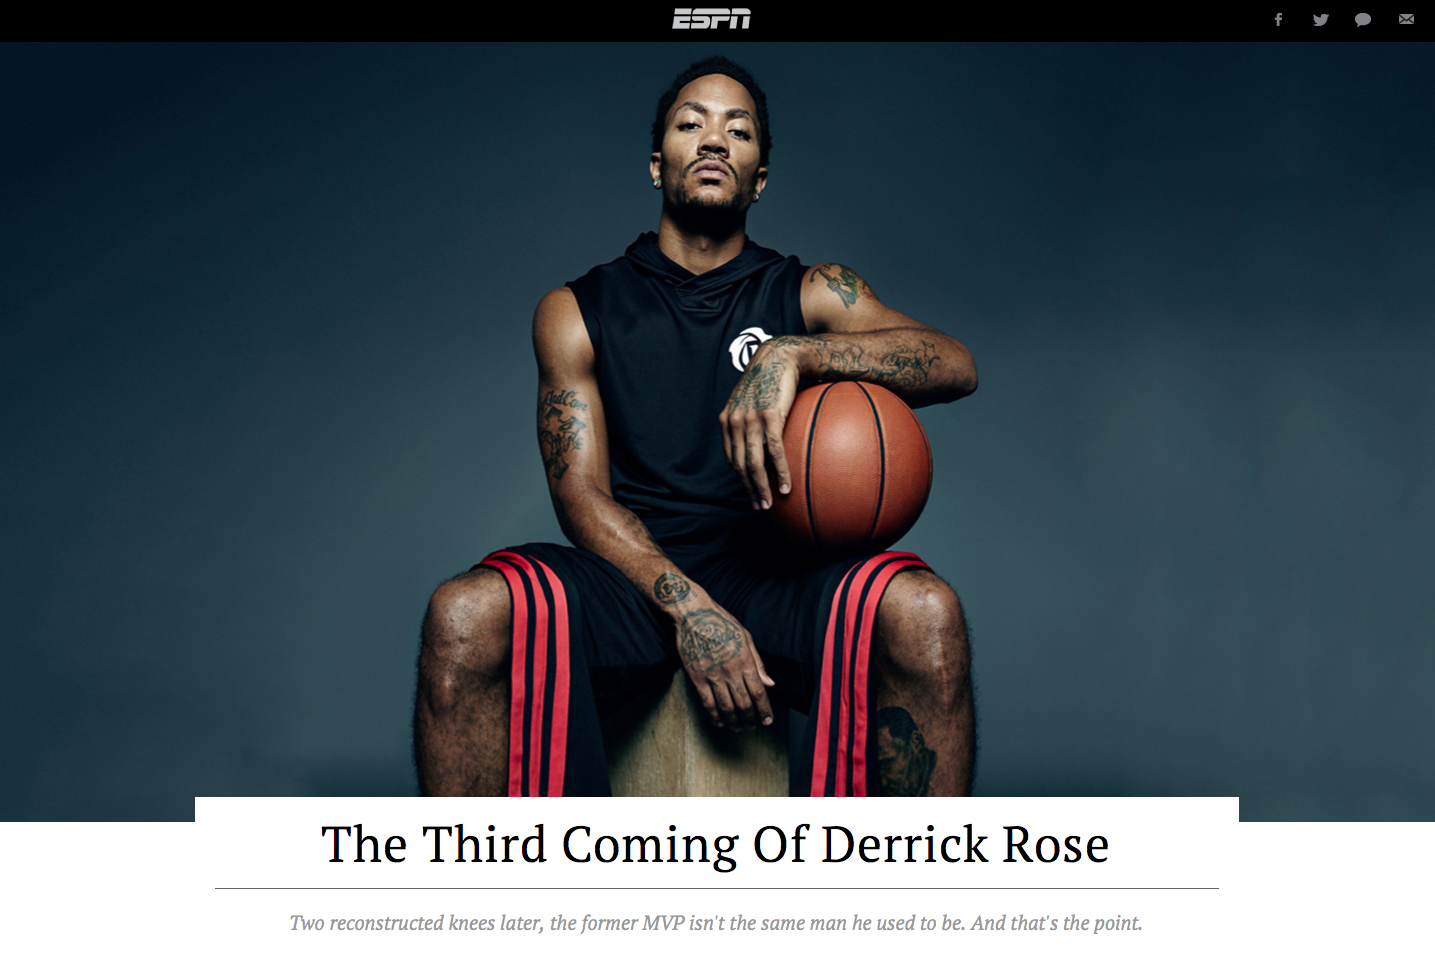 Pin by Heather D on Editorial Design | Derrick rose